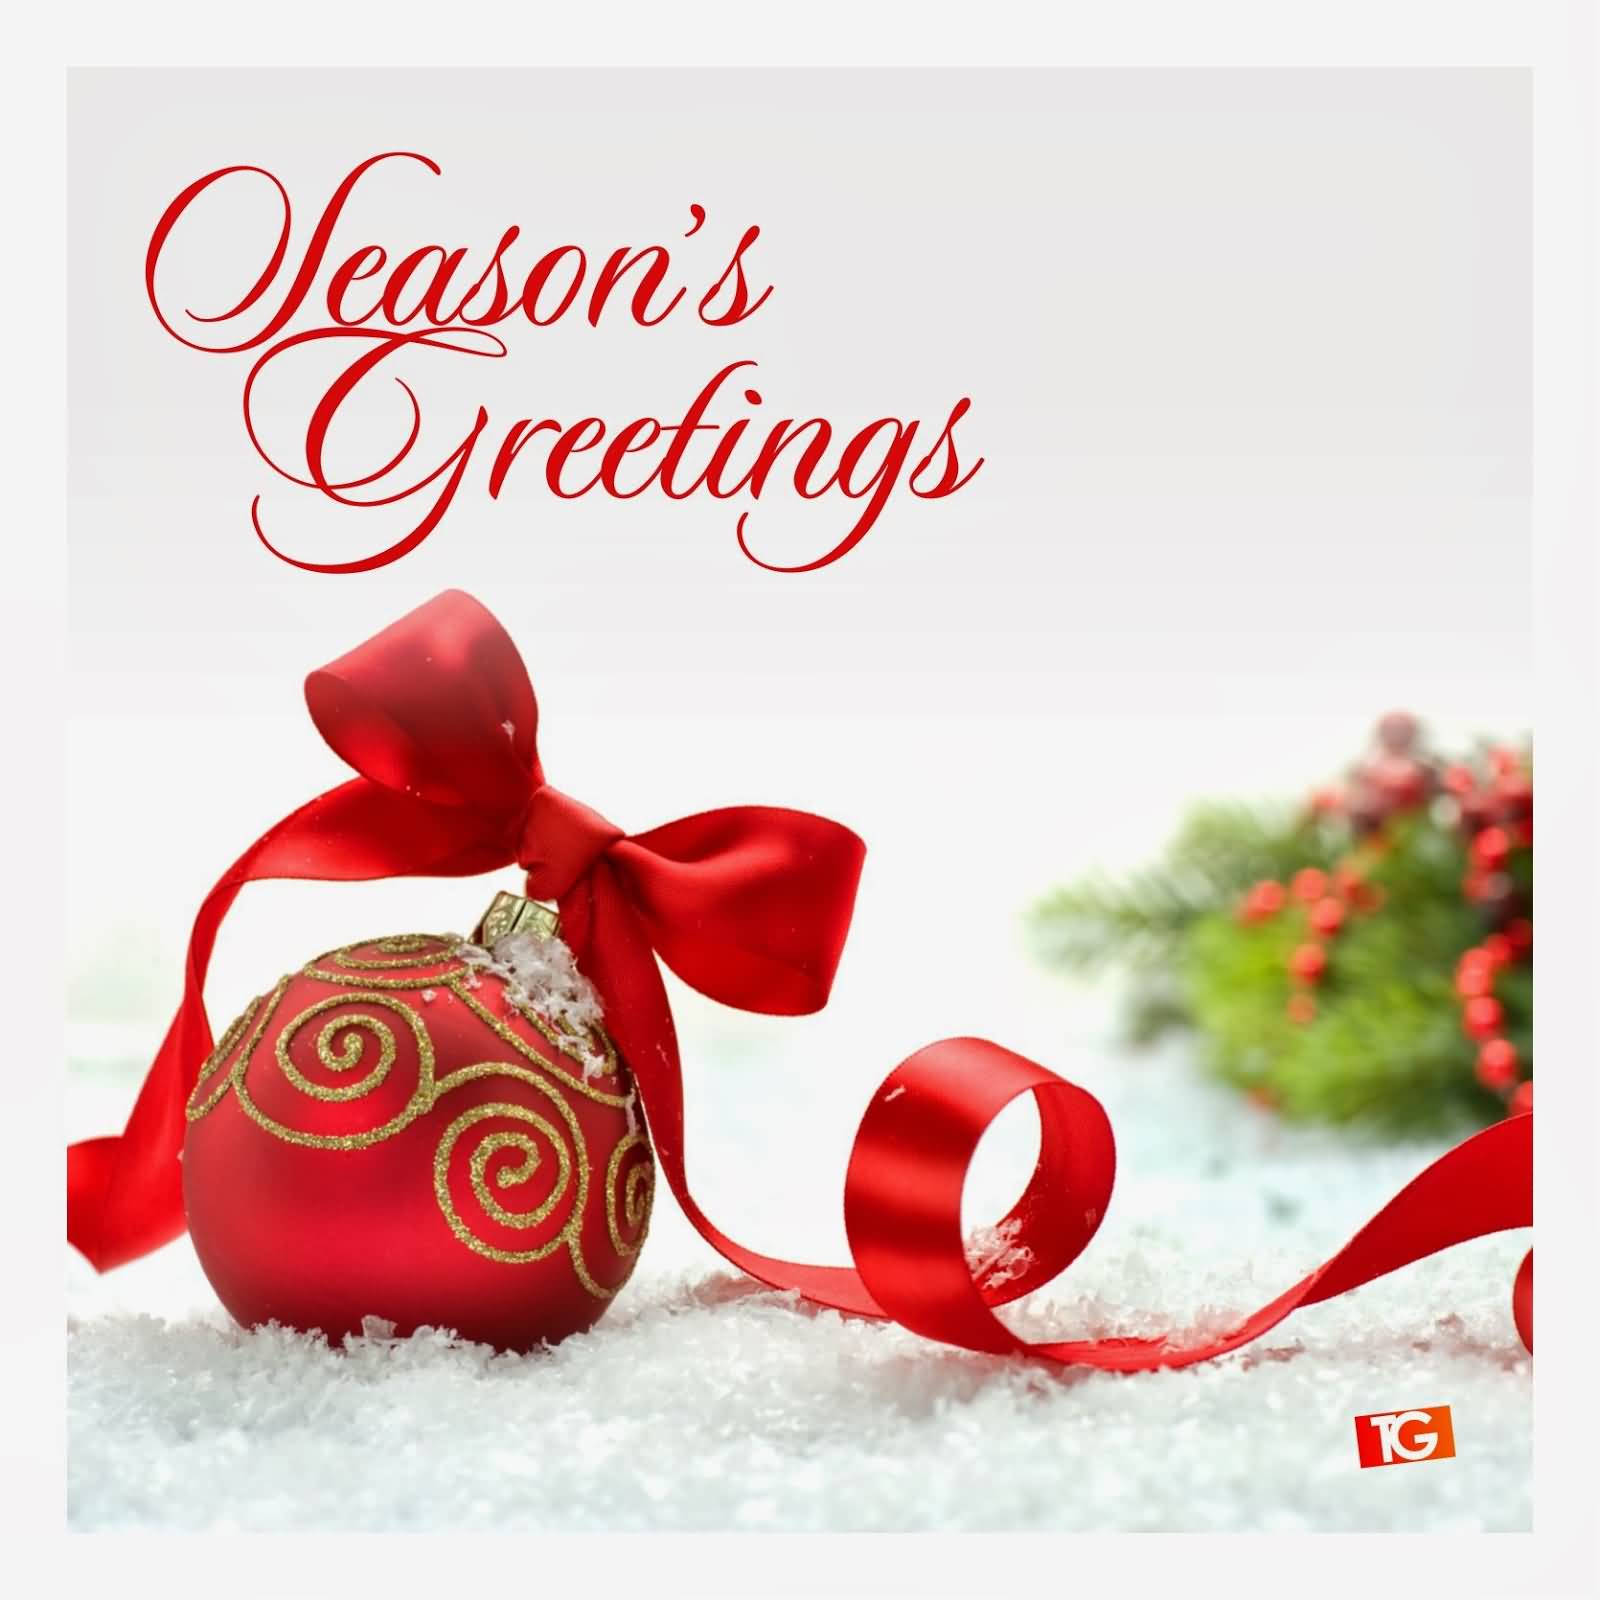 55 best seasons greetings and photos seasons greetings red christmas ball with ribbon bow m4hsunfo